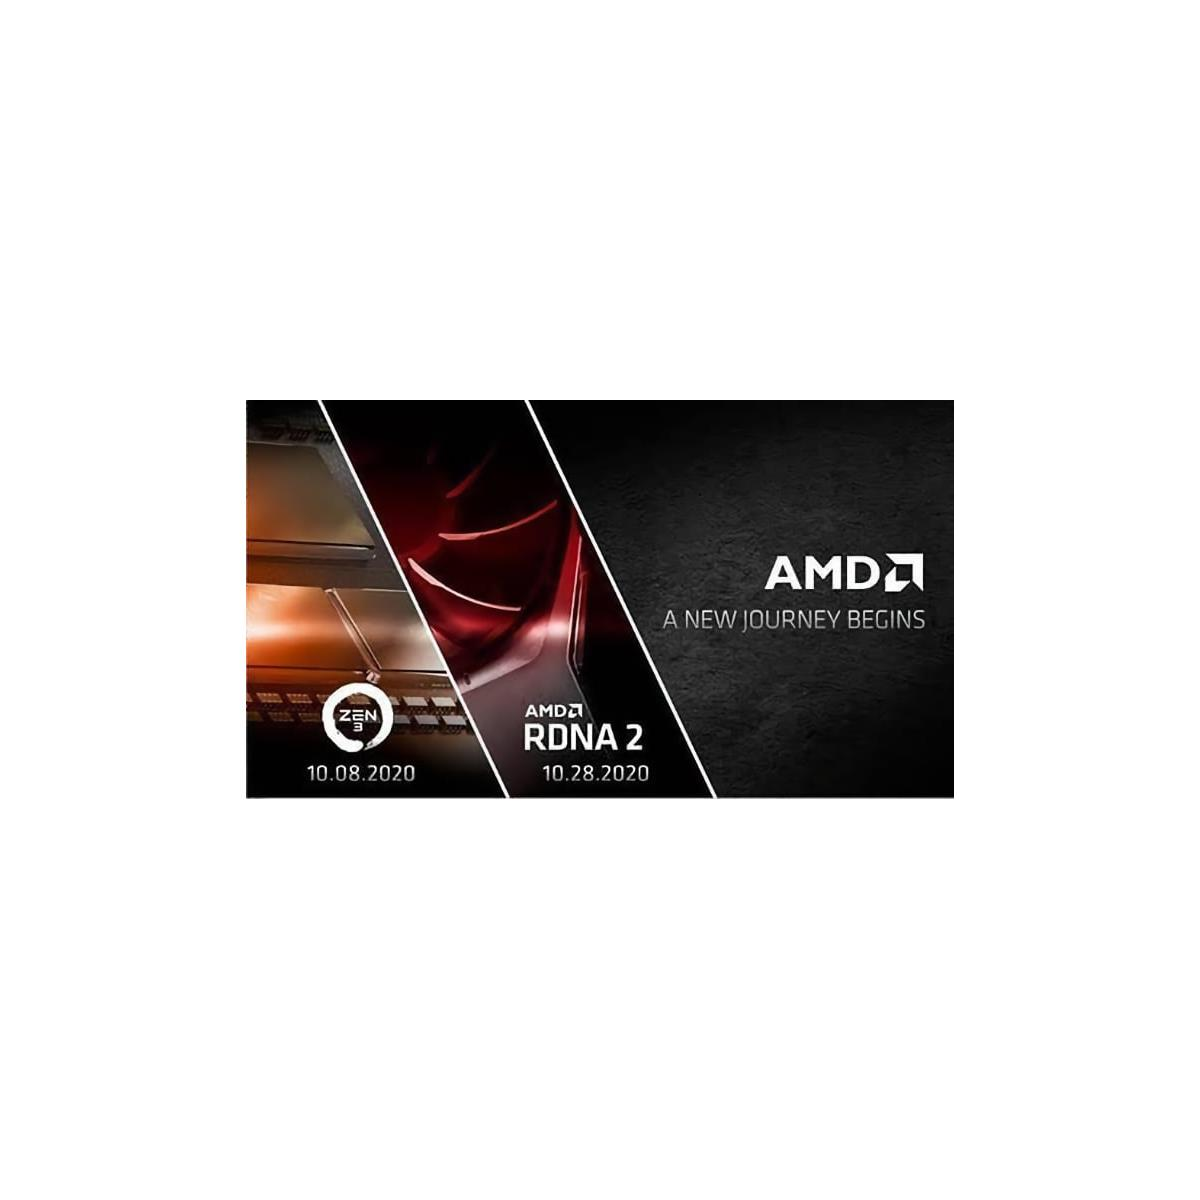 Radeon Rx 6000 And Zen 3 October Surprise Amd Sets Dates For A New Journey Hothardware